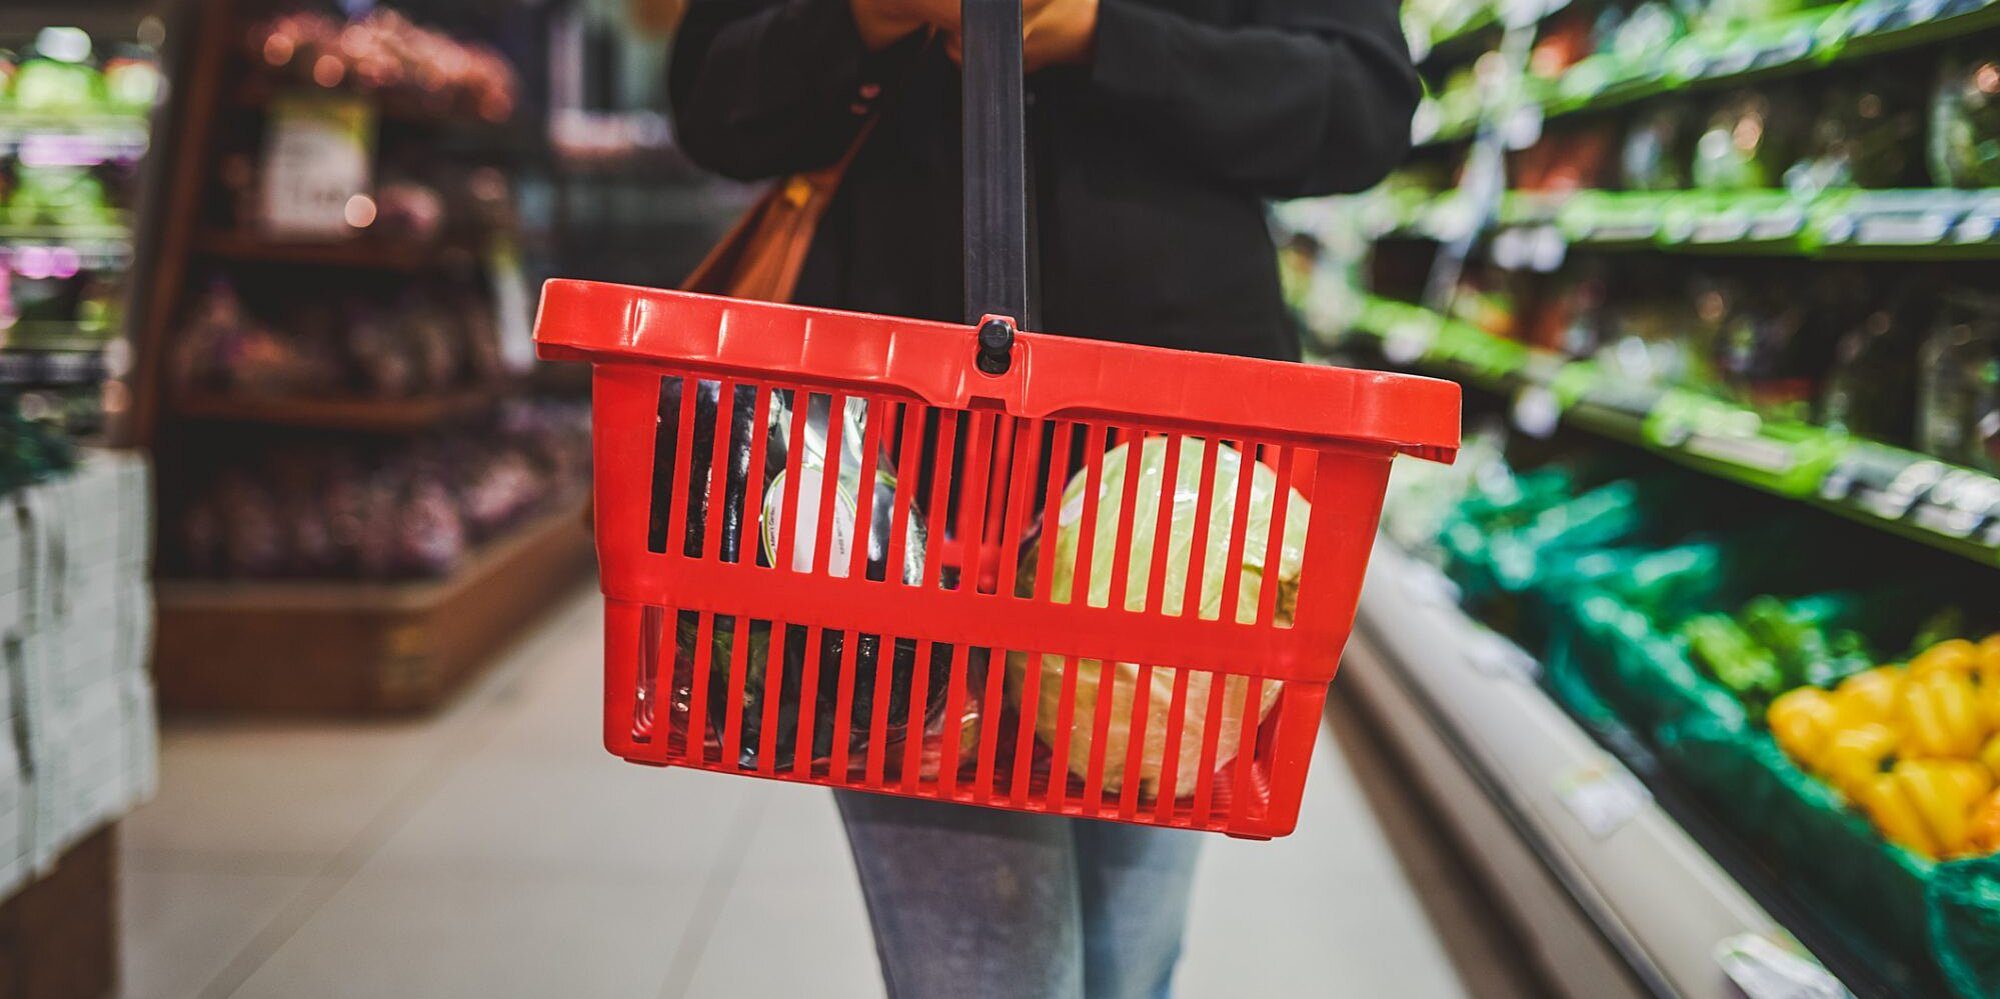 tips and tricks for saving money at the grocery store according to